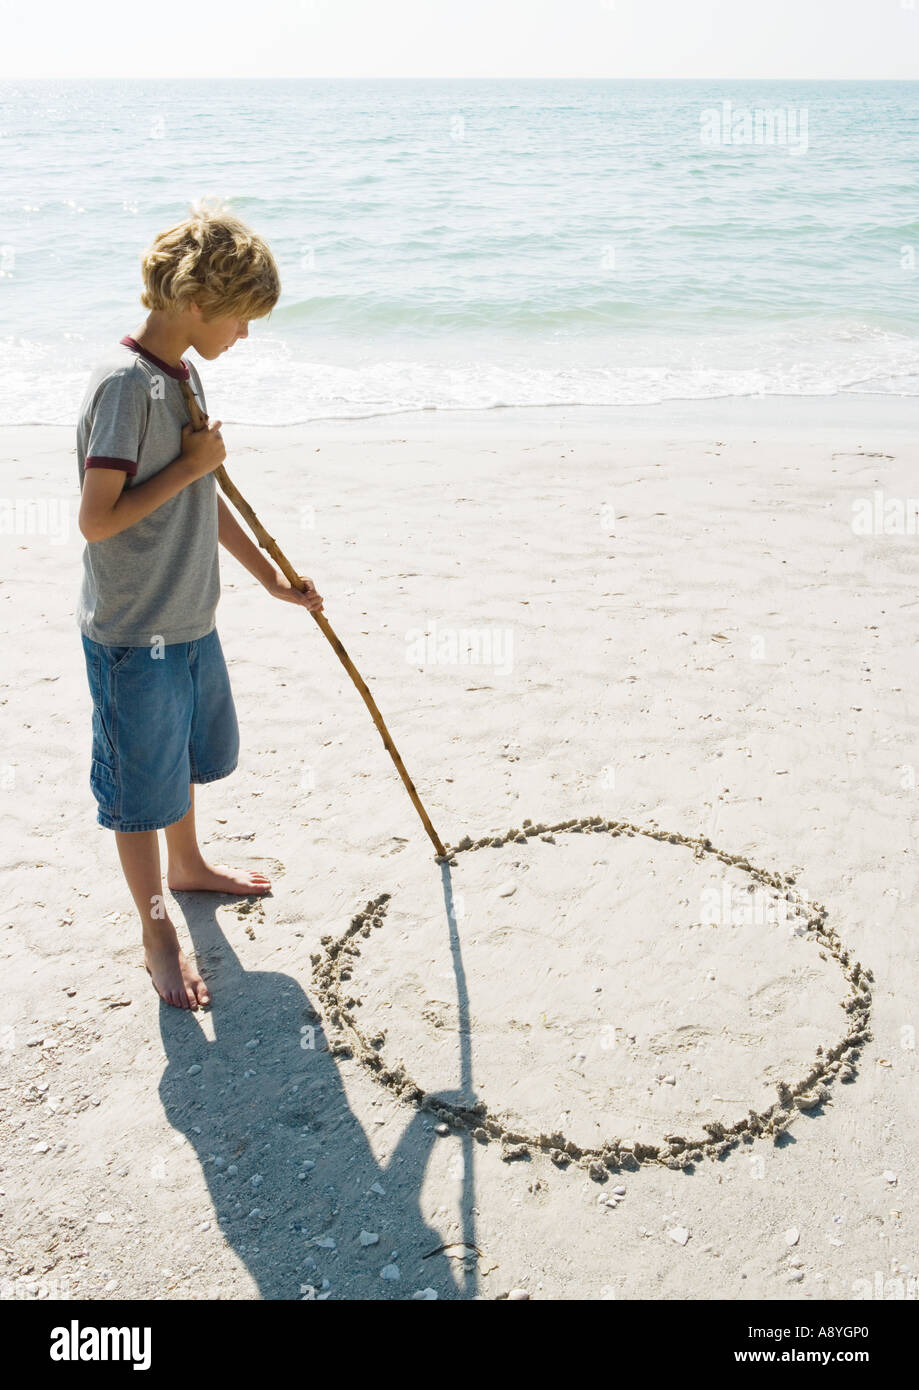 Boy drawing circle in sand - Stock Image